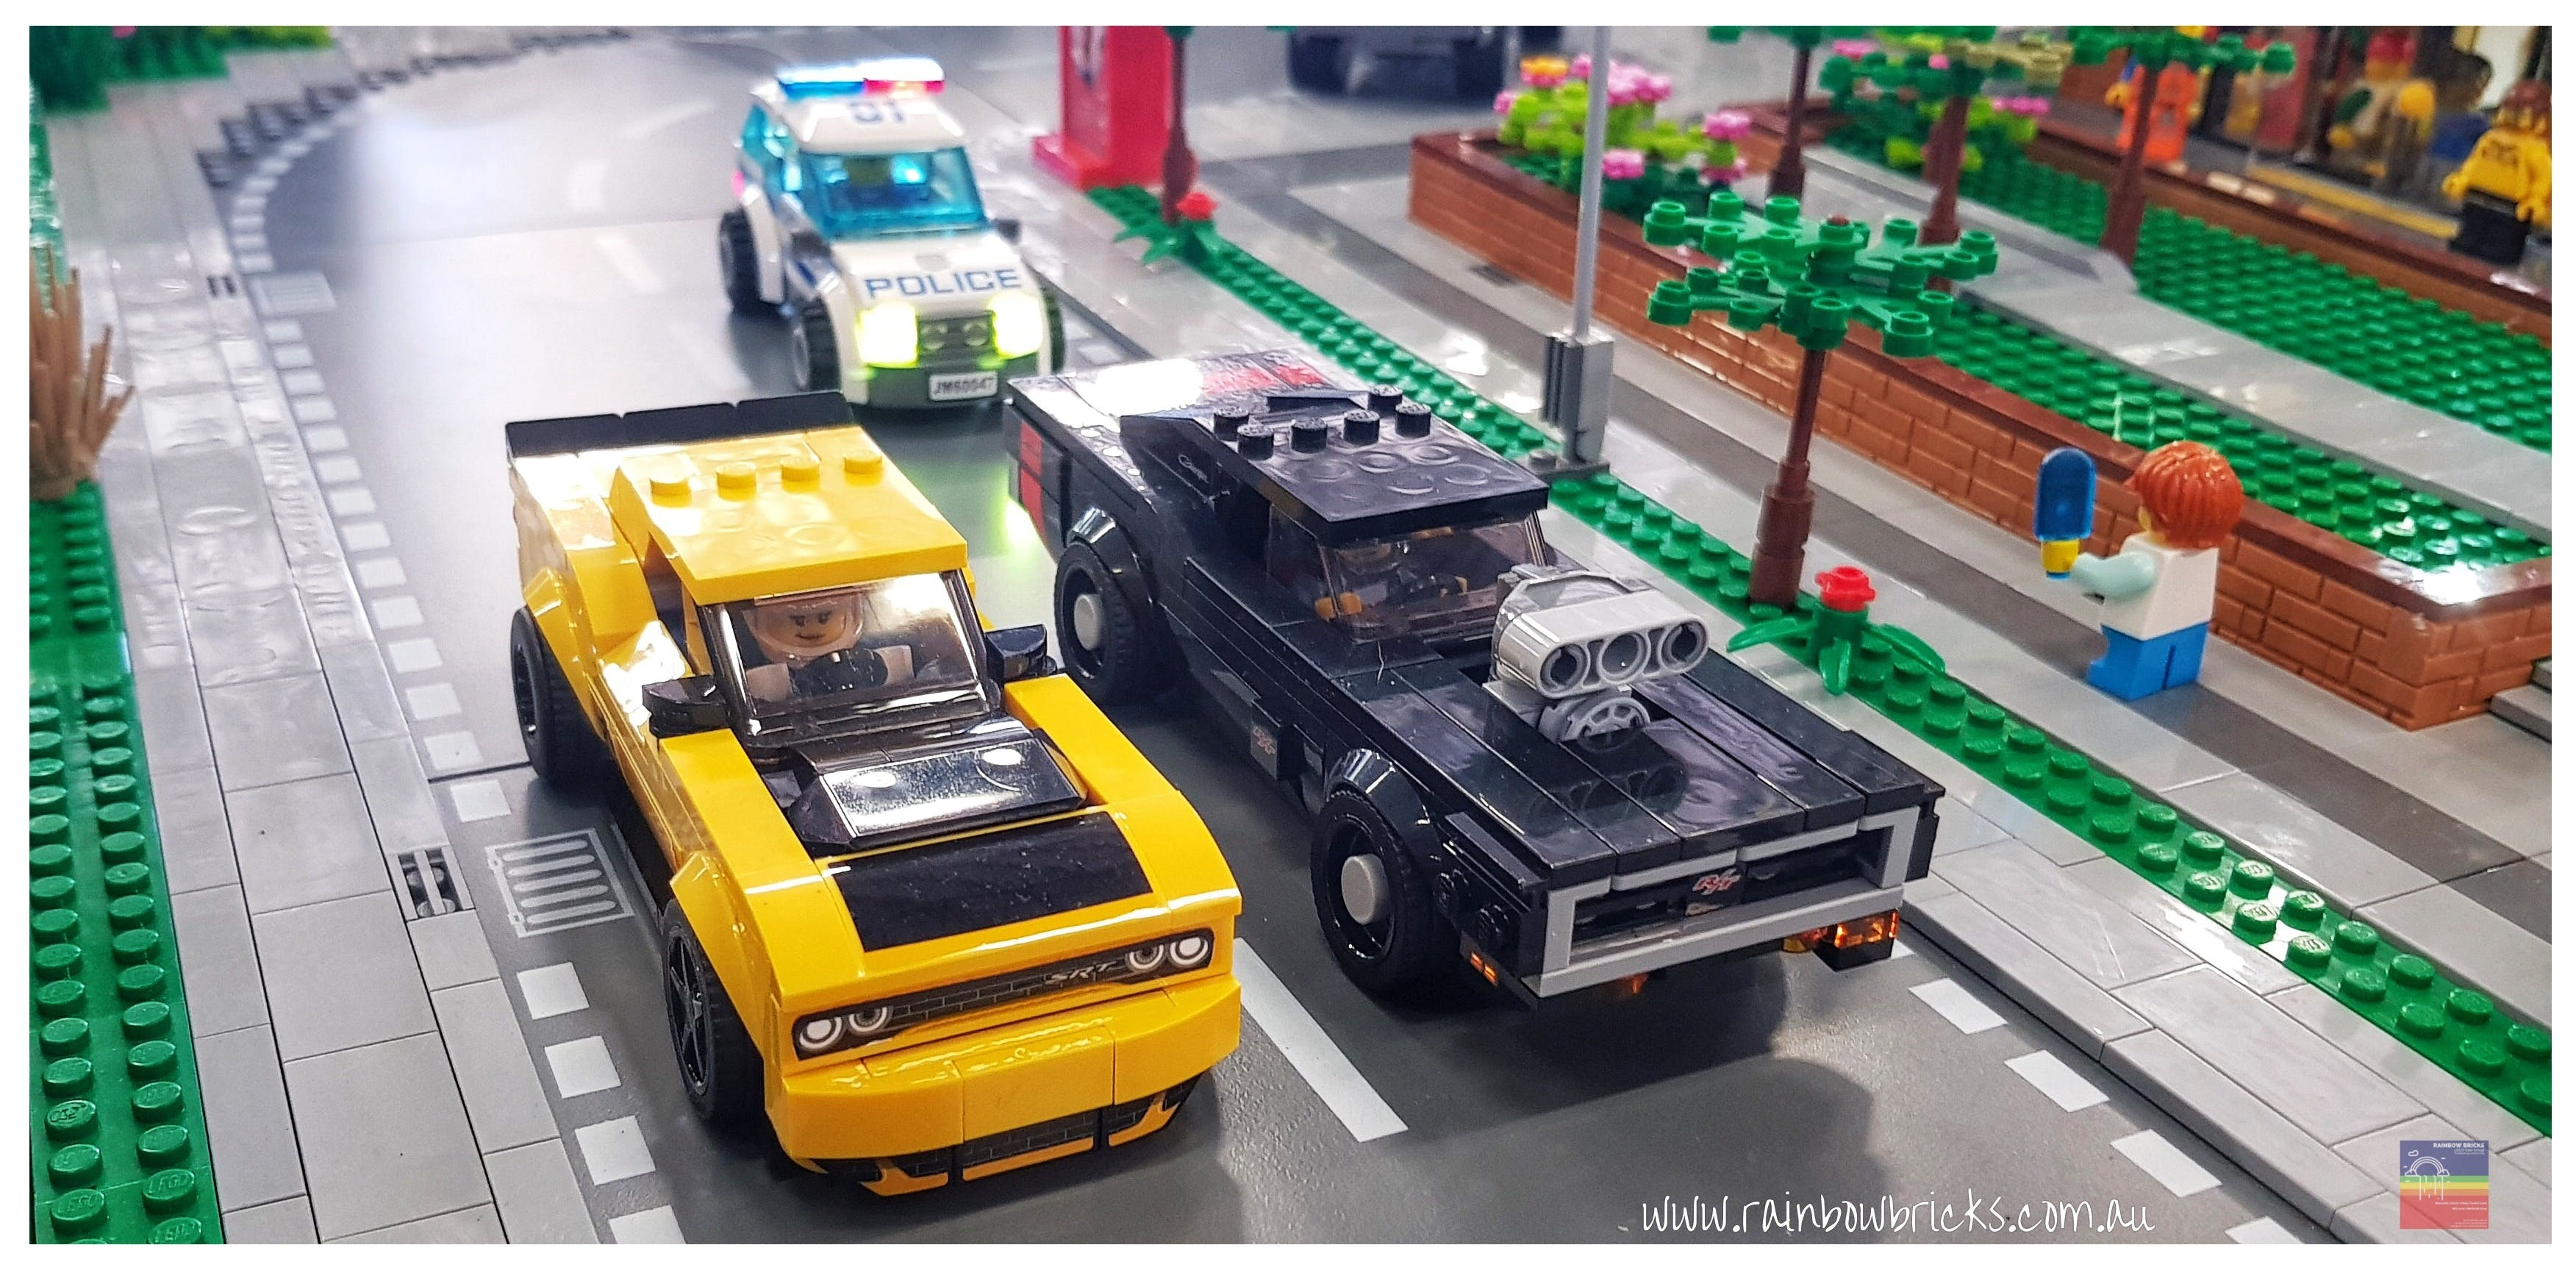 Brickfest at The Bay A Lego Fan Event - South Australia Travel